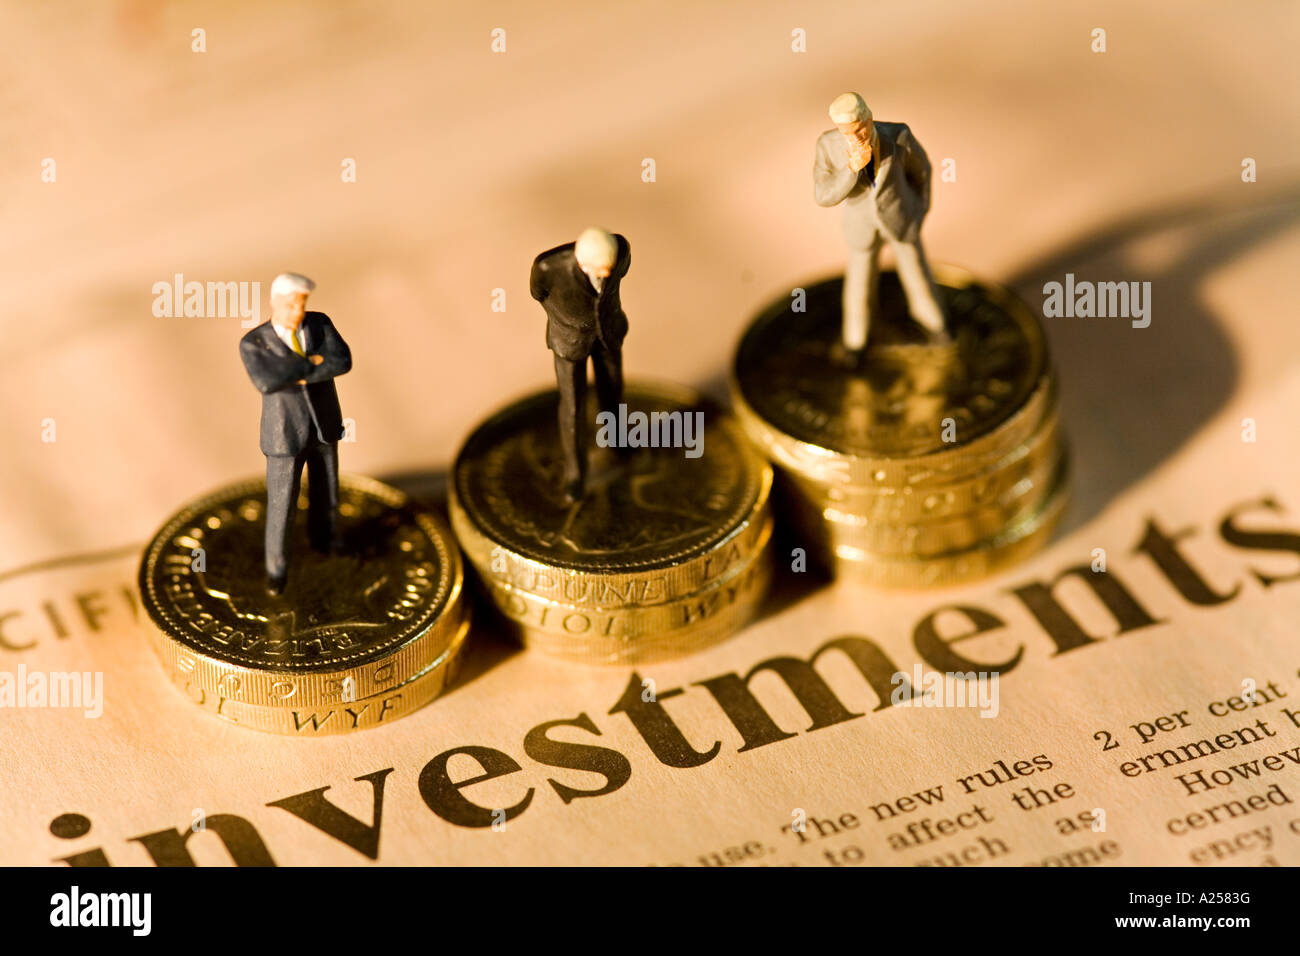 Miniature businessmen standing on stacks of coins on financial newspaper with investments headline - Stock Image